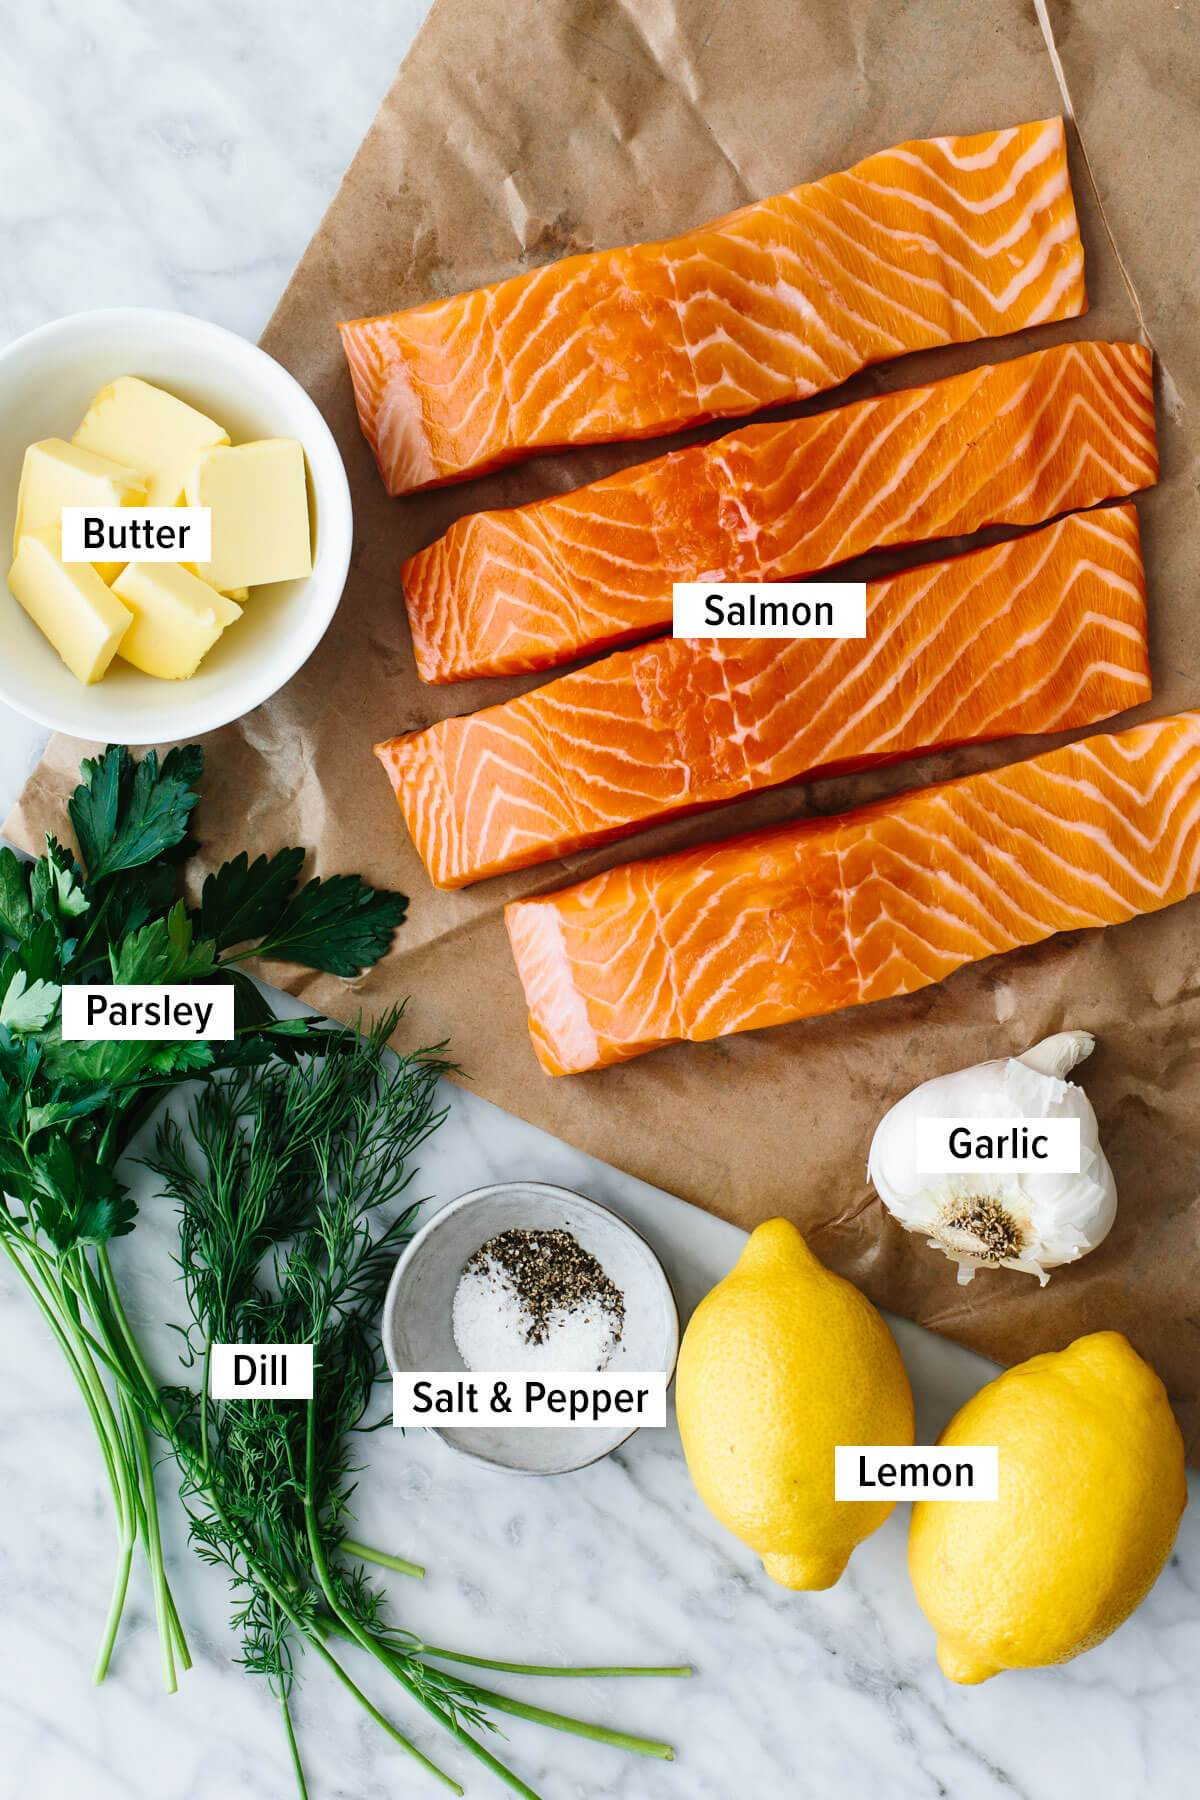 Ingredients for baked salmon on a table.